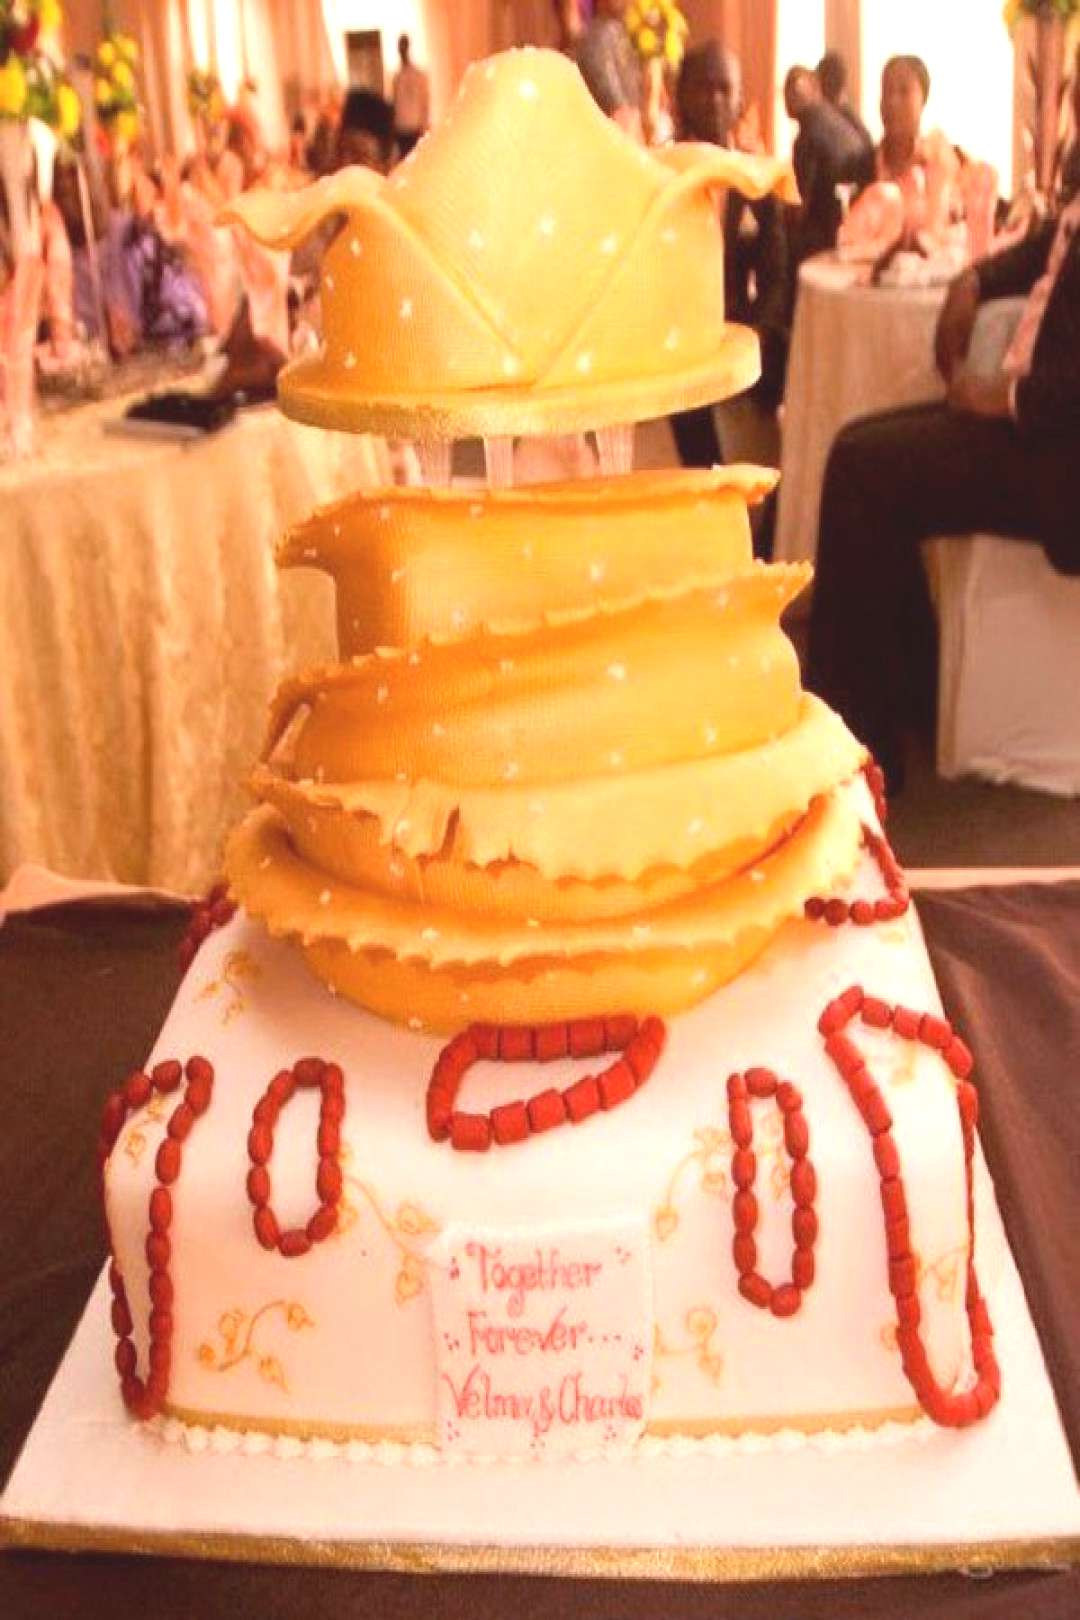 Traditional Wedding Cakes - Pictures from Weddings in Nigeria,  Best Picture For traditional wed